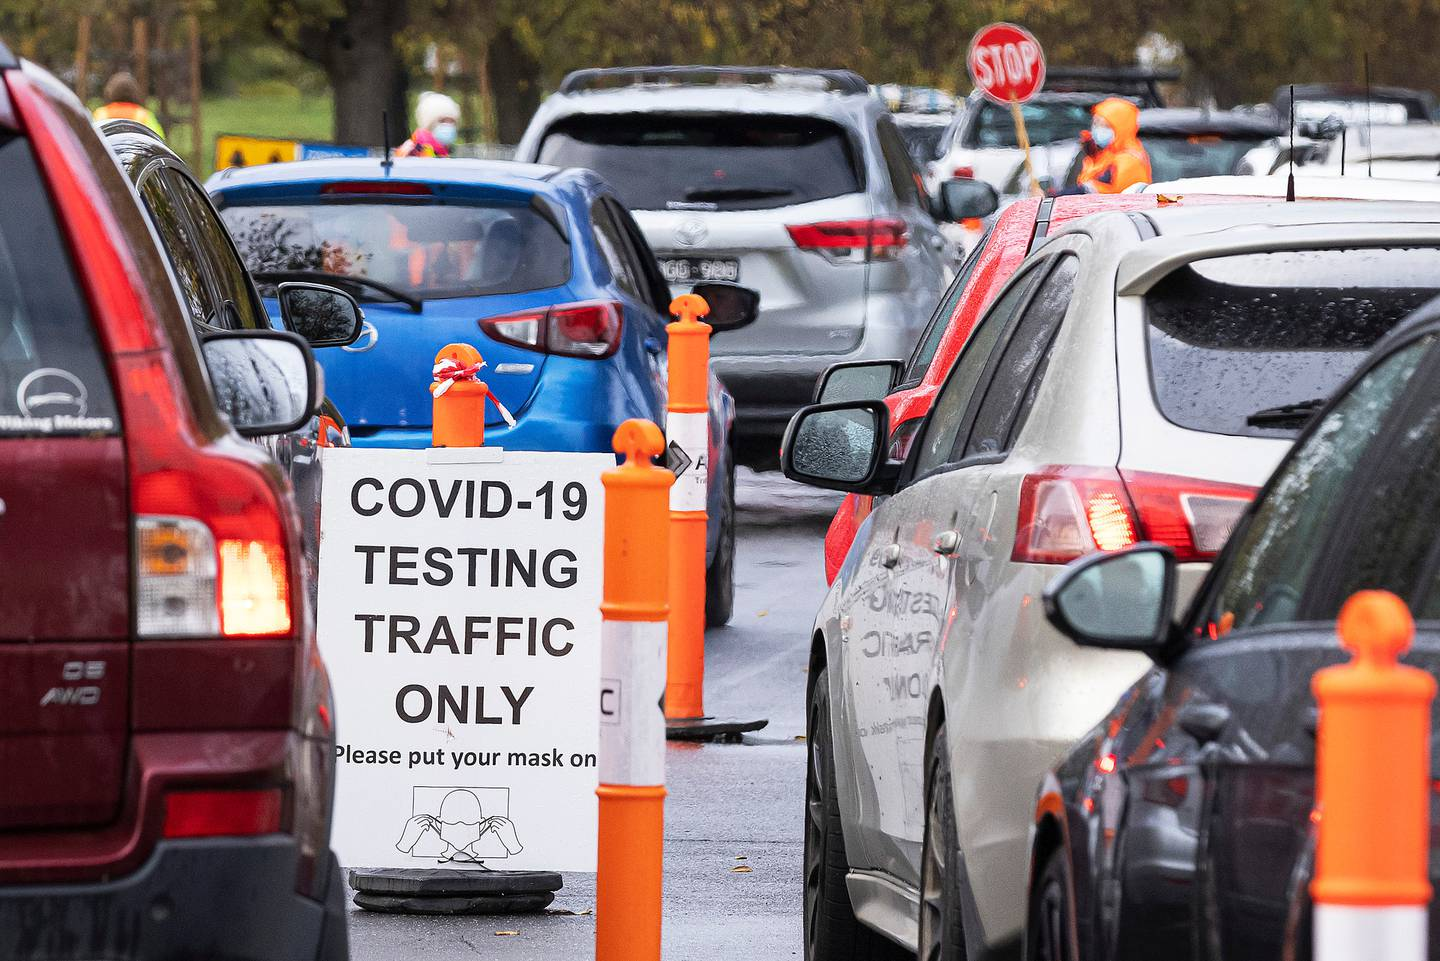 Queues at a pop-up Covid testing site in Melbourne, Australia on May 27, 2021. Photo / Getty Images